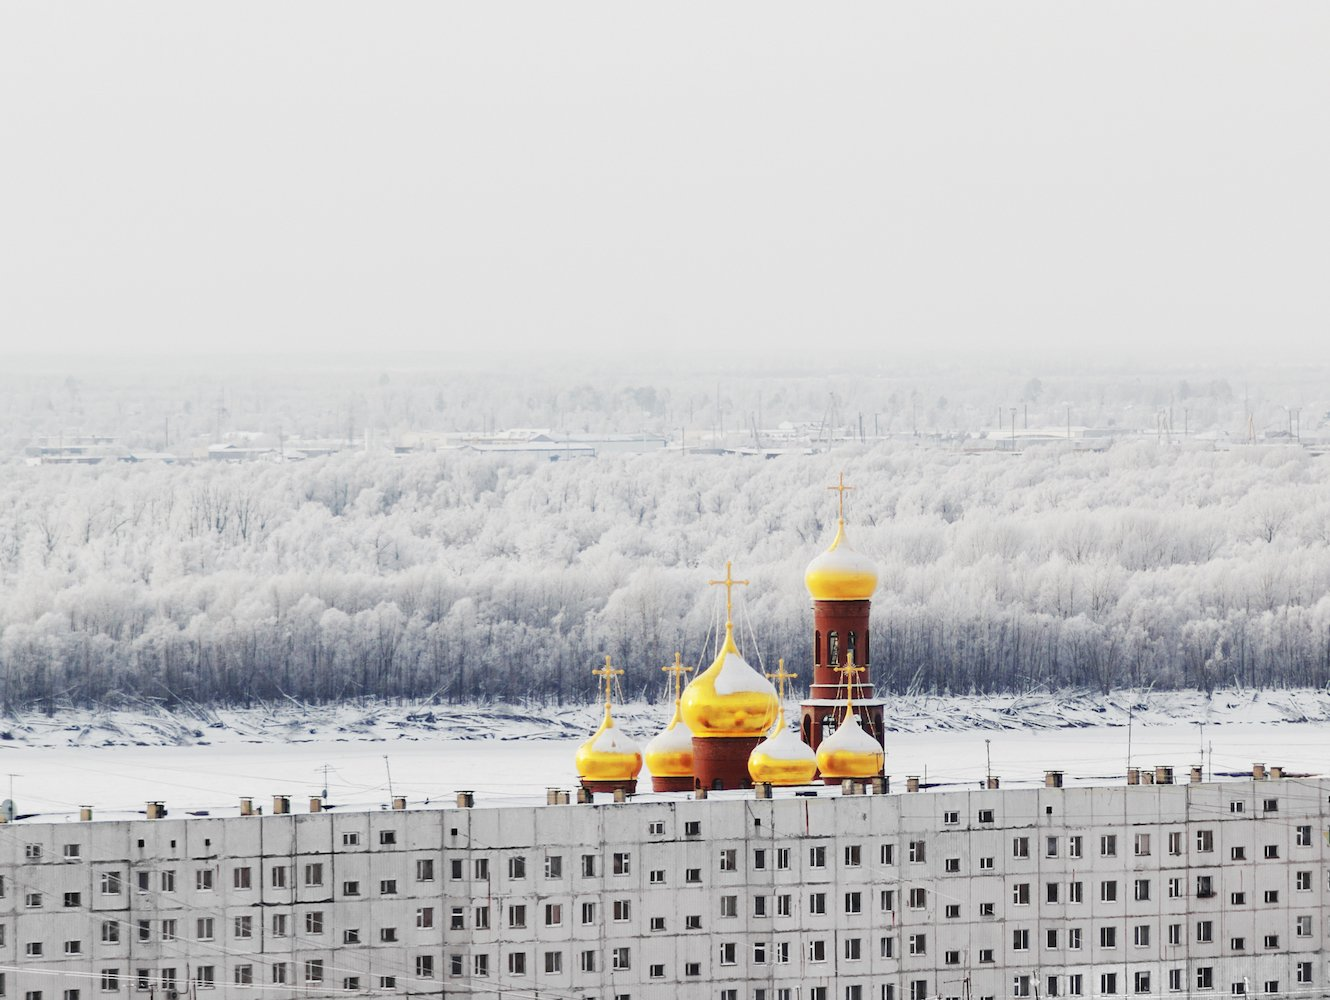 A journey across Russia – in photos